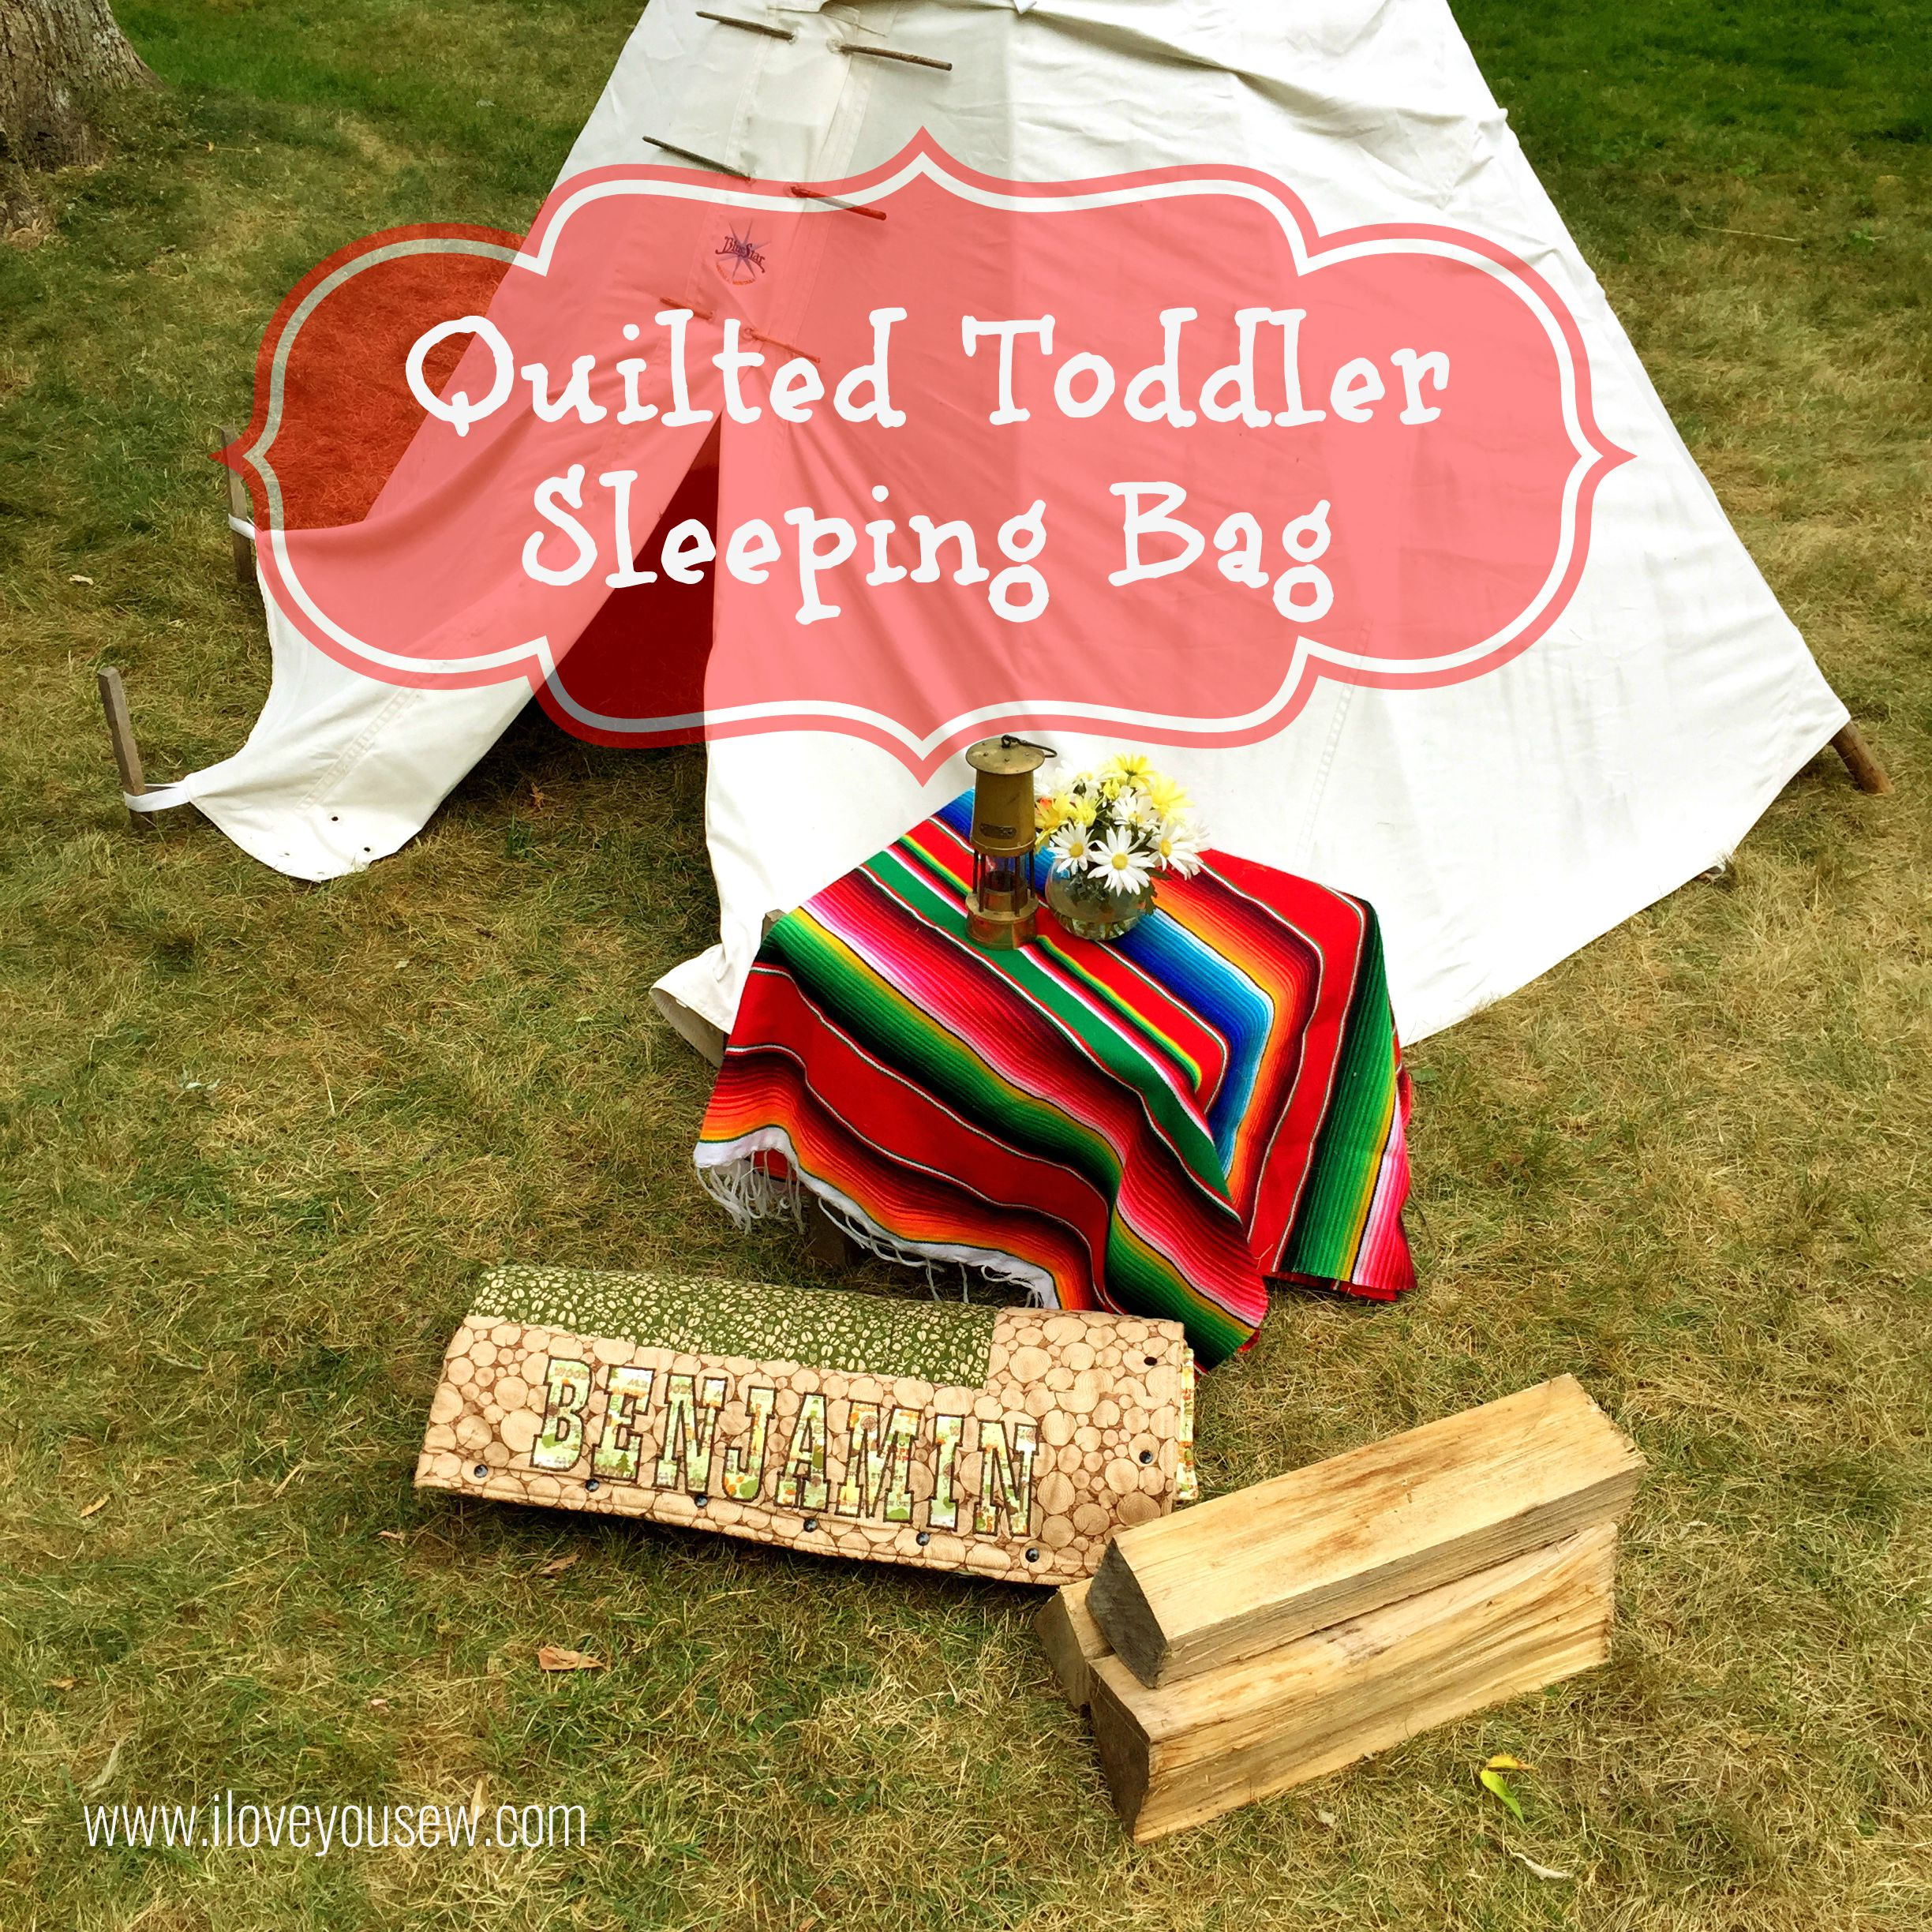 Quilted Toddler Sleeping Bag